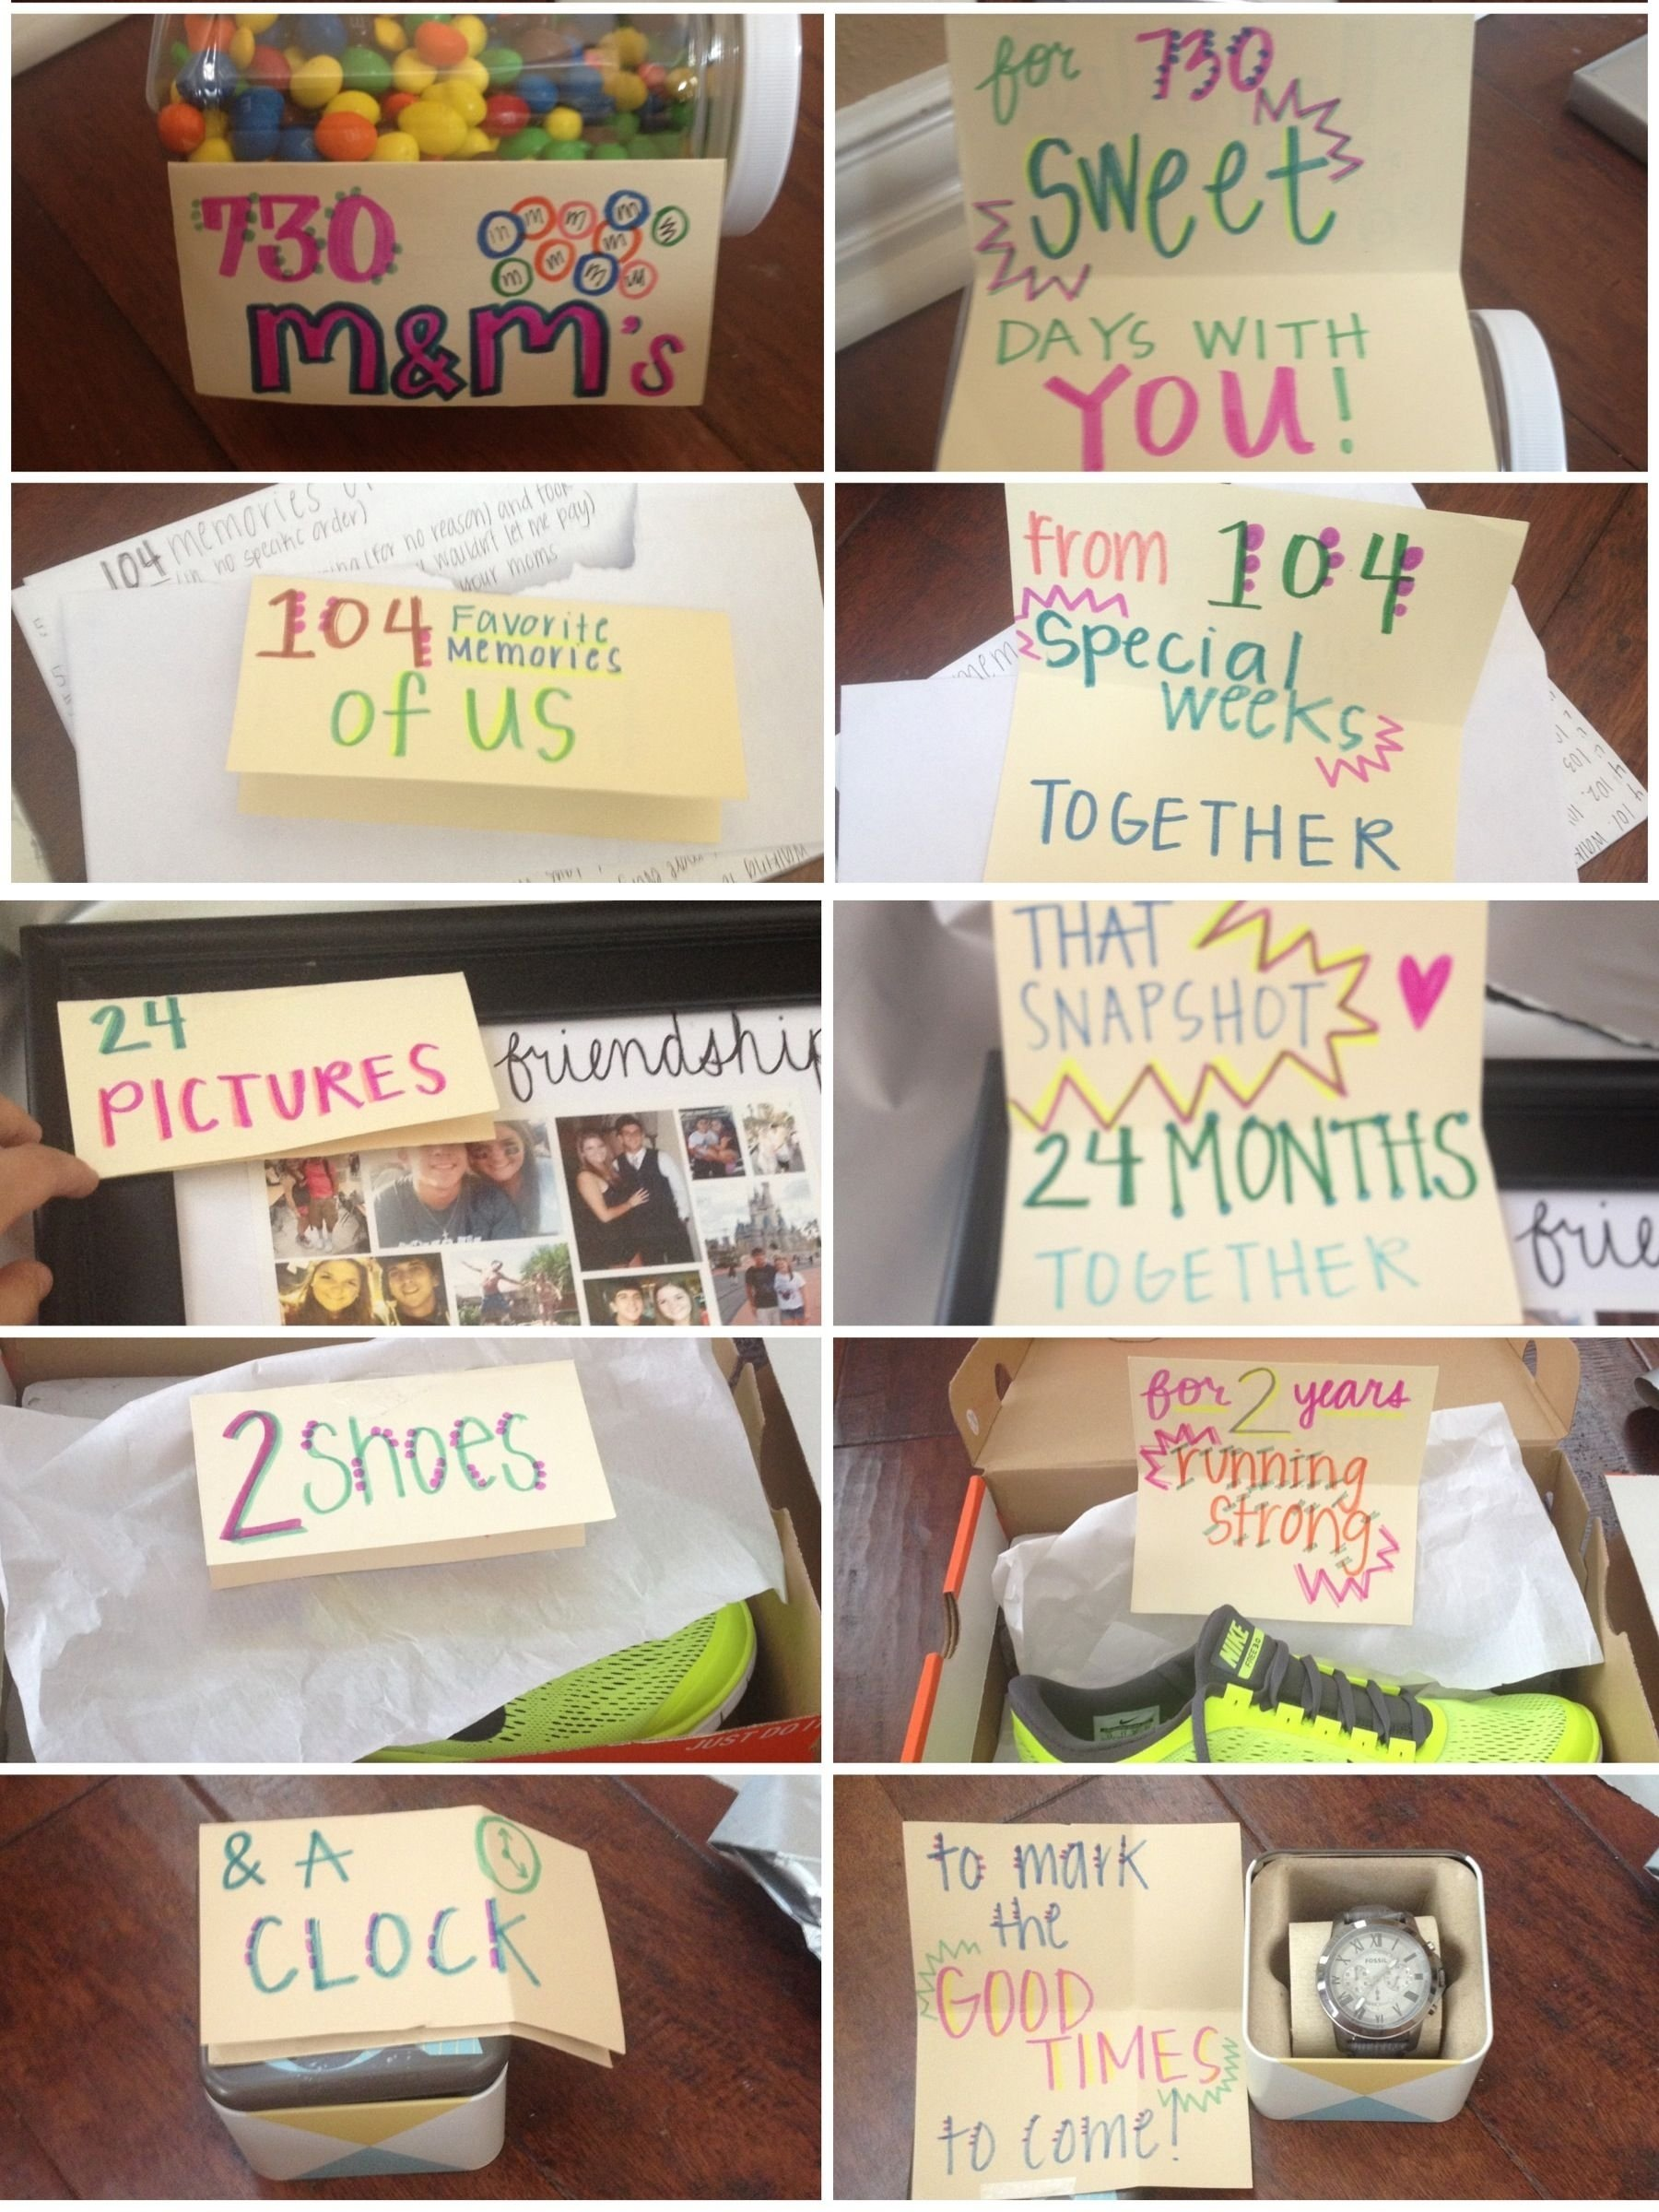 10 Amazing 2 Year Anniversary Ideas Him even though the two years has passed i could use this for 16